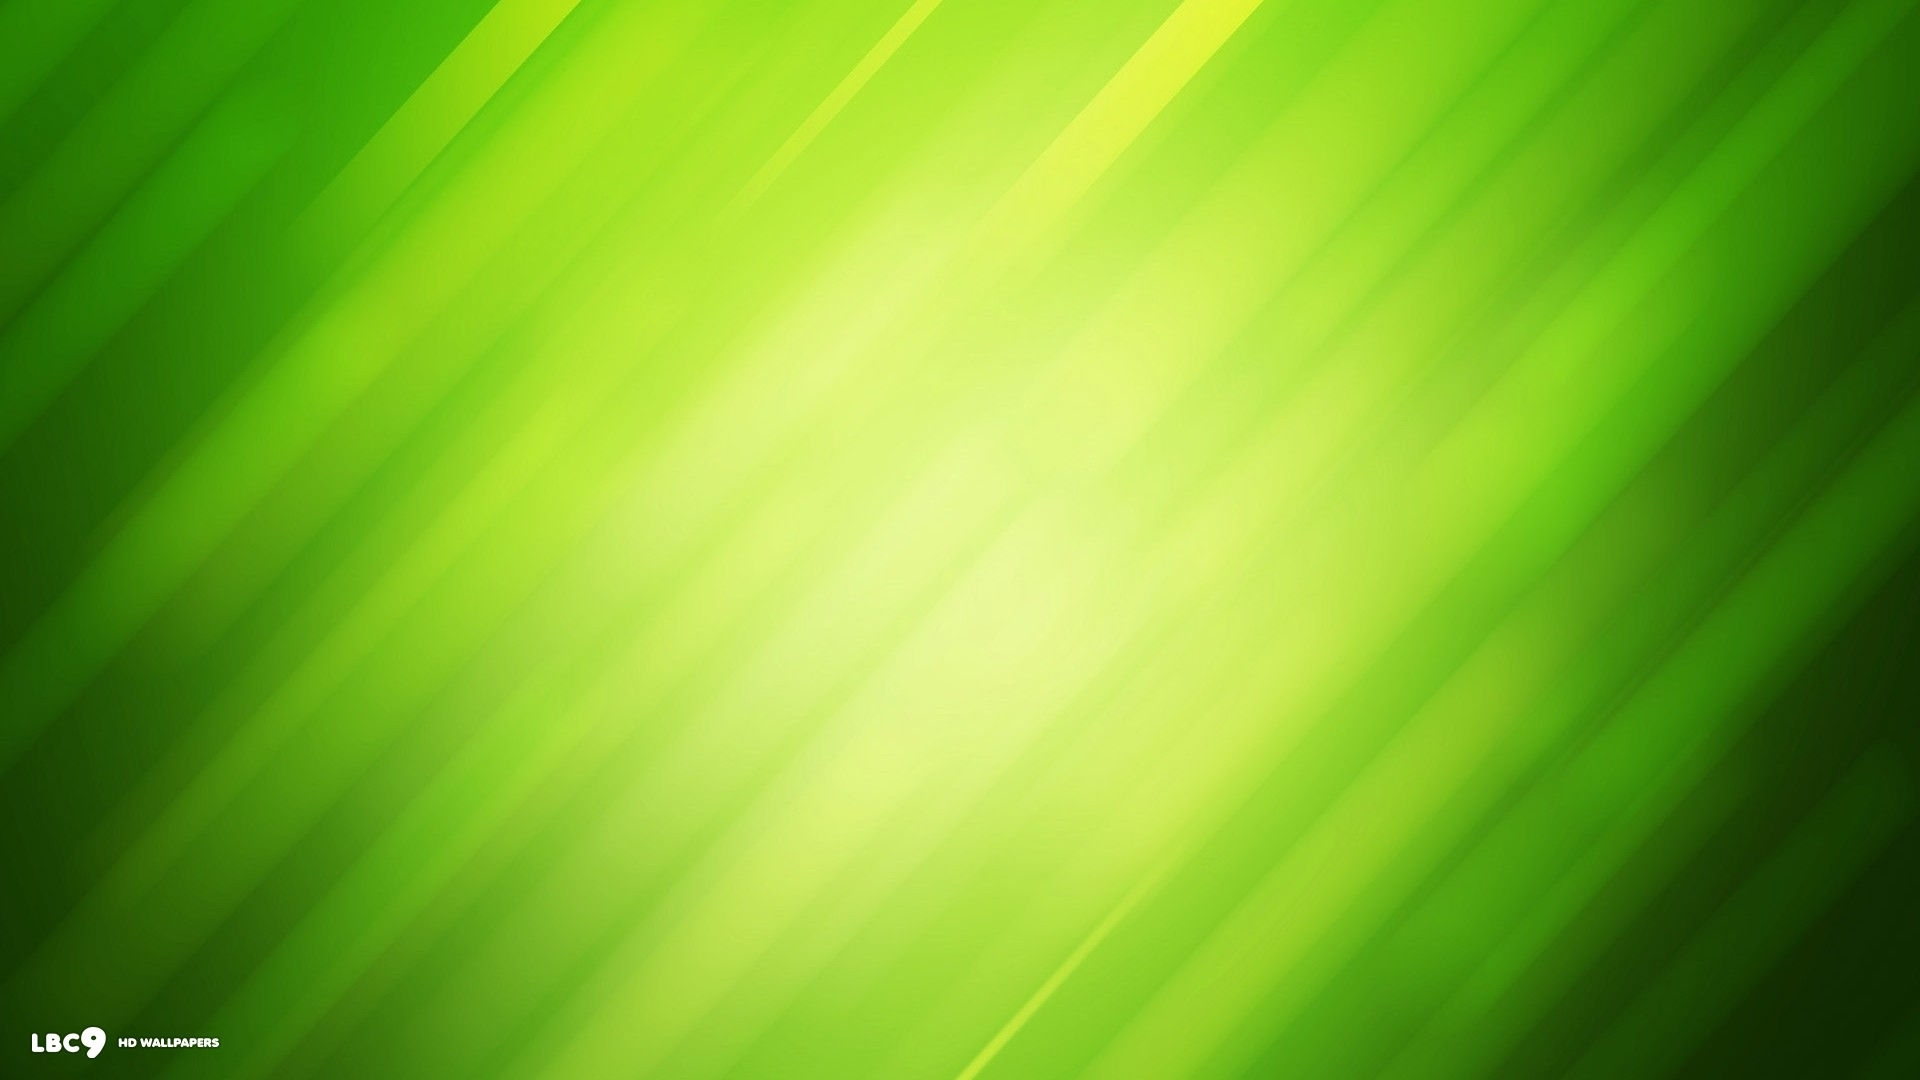 green abstract wallpapers, fine hdq green abstract images